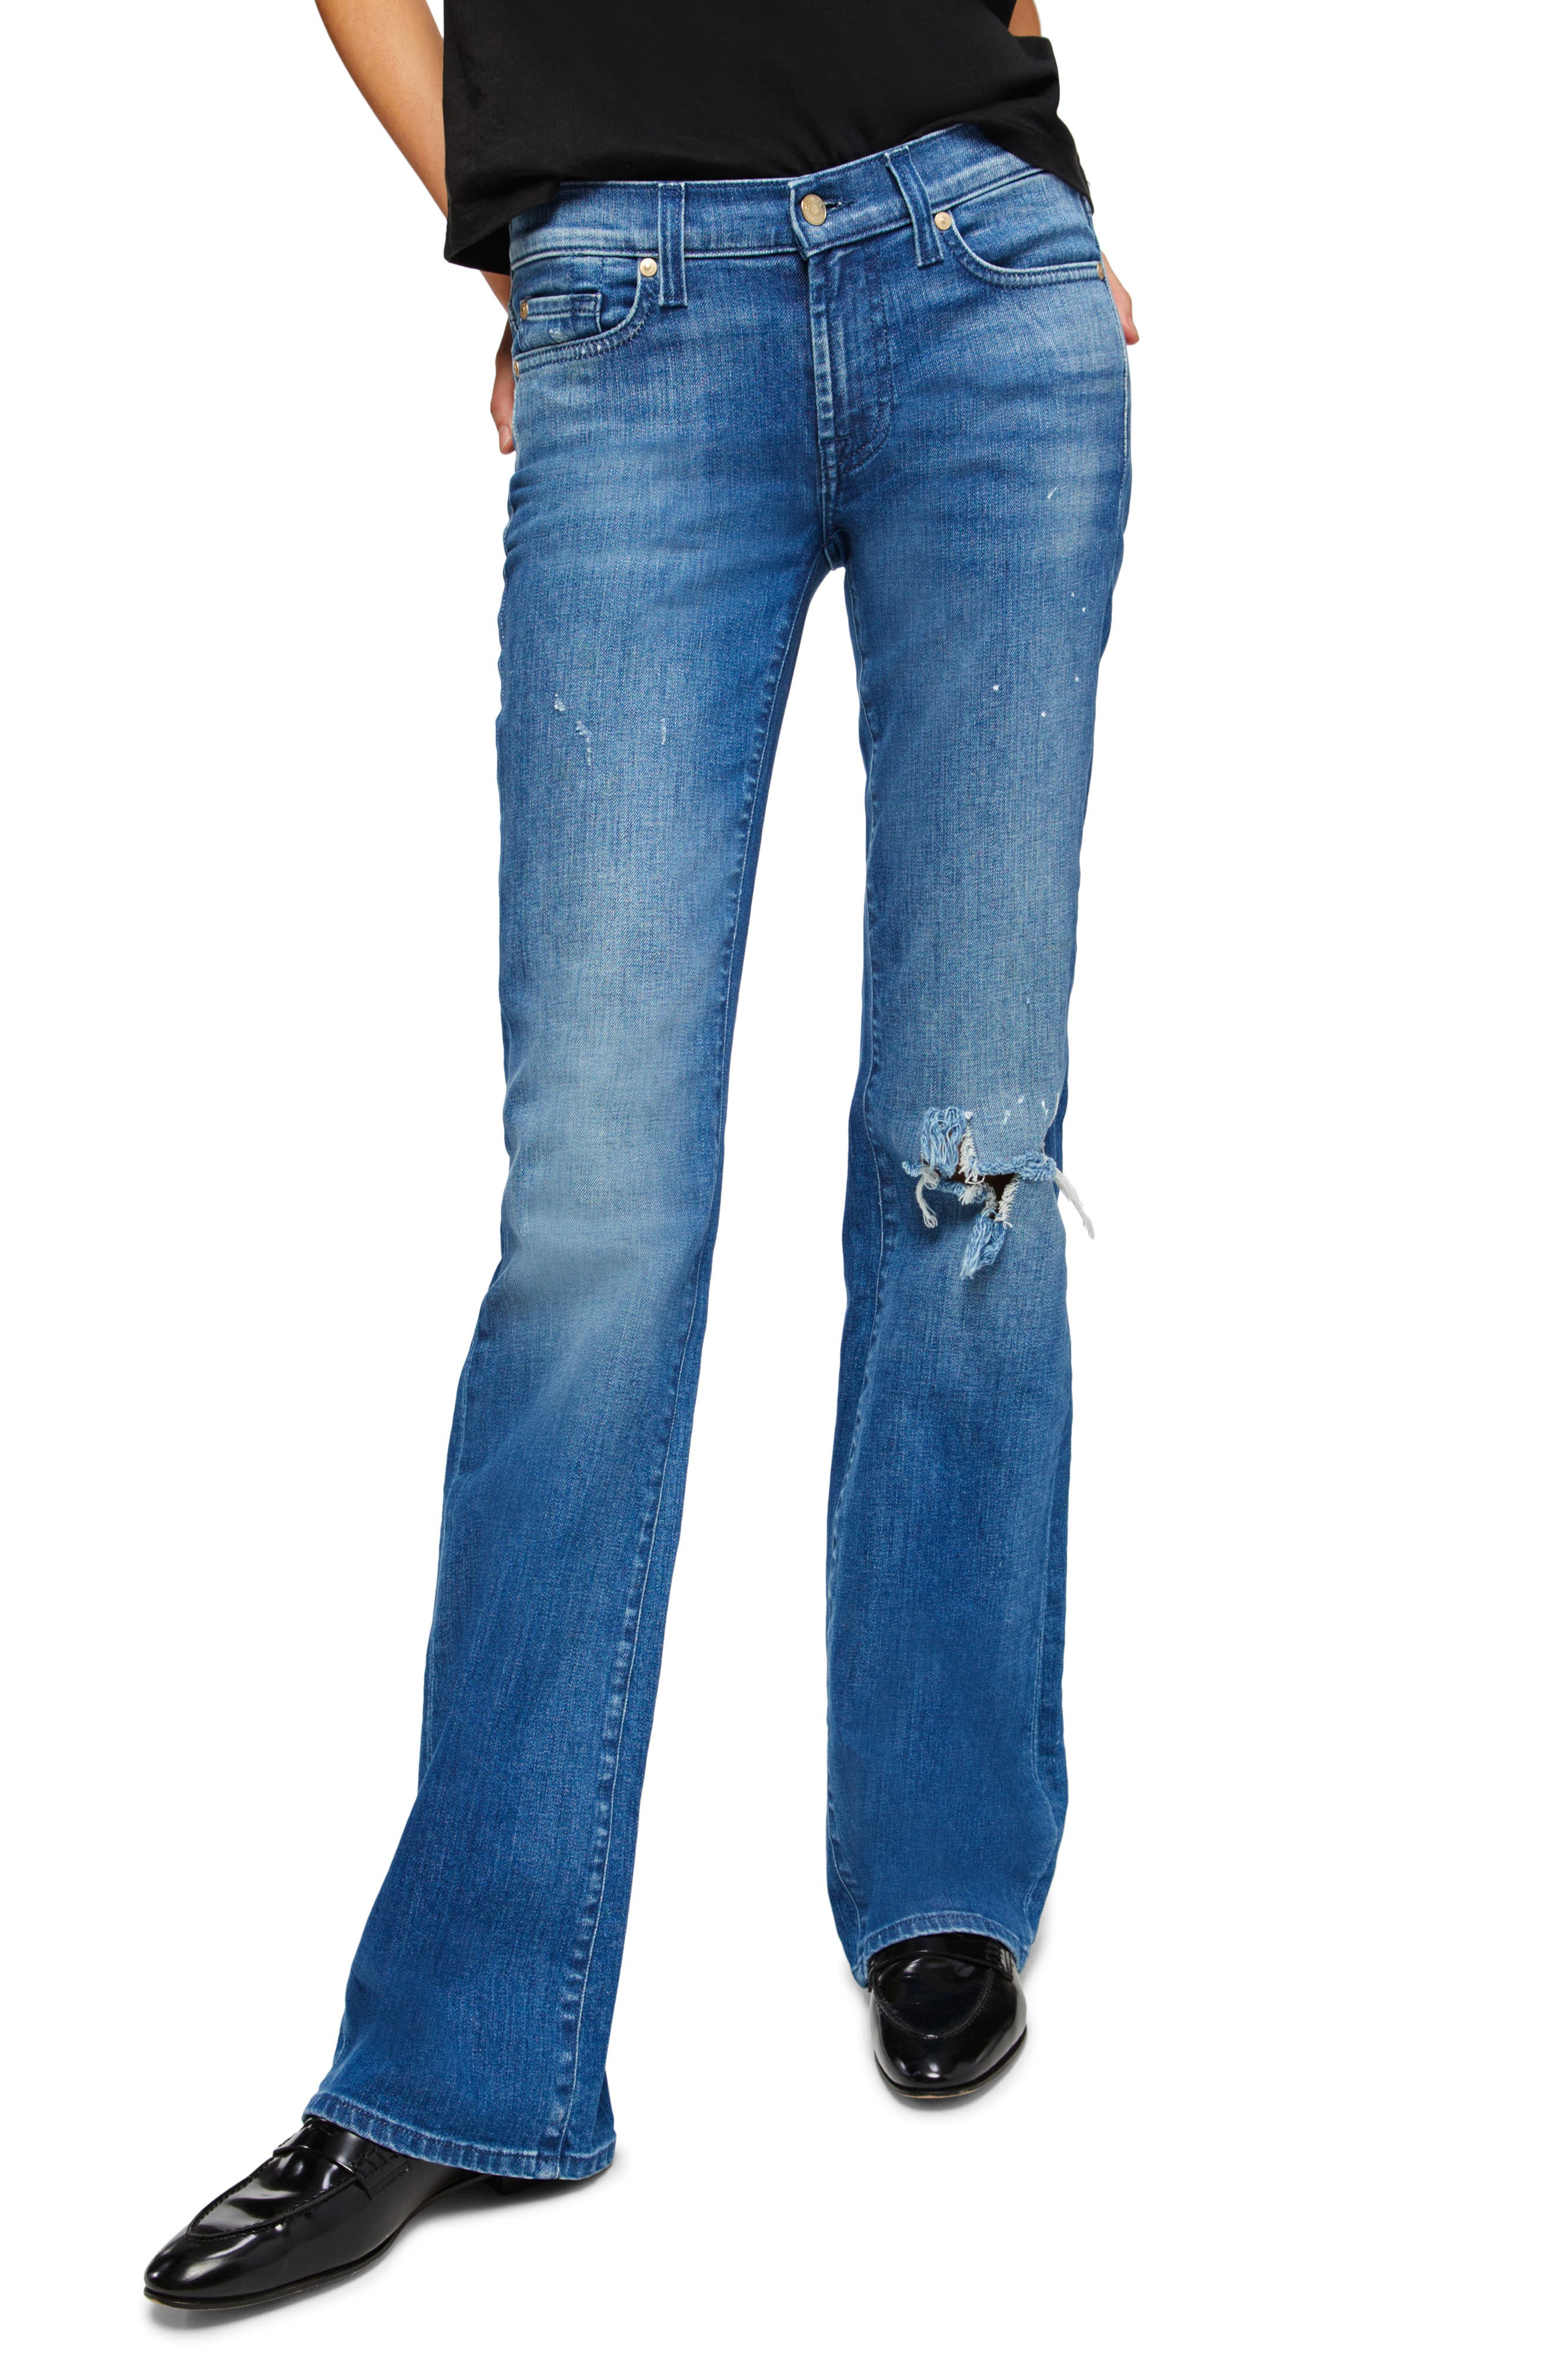 Women's 7 For All Mankind Ripped Original Bootcut Jeans